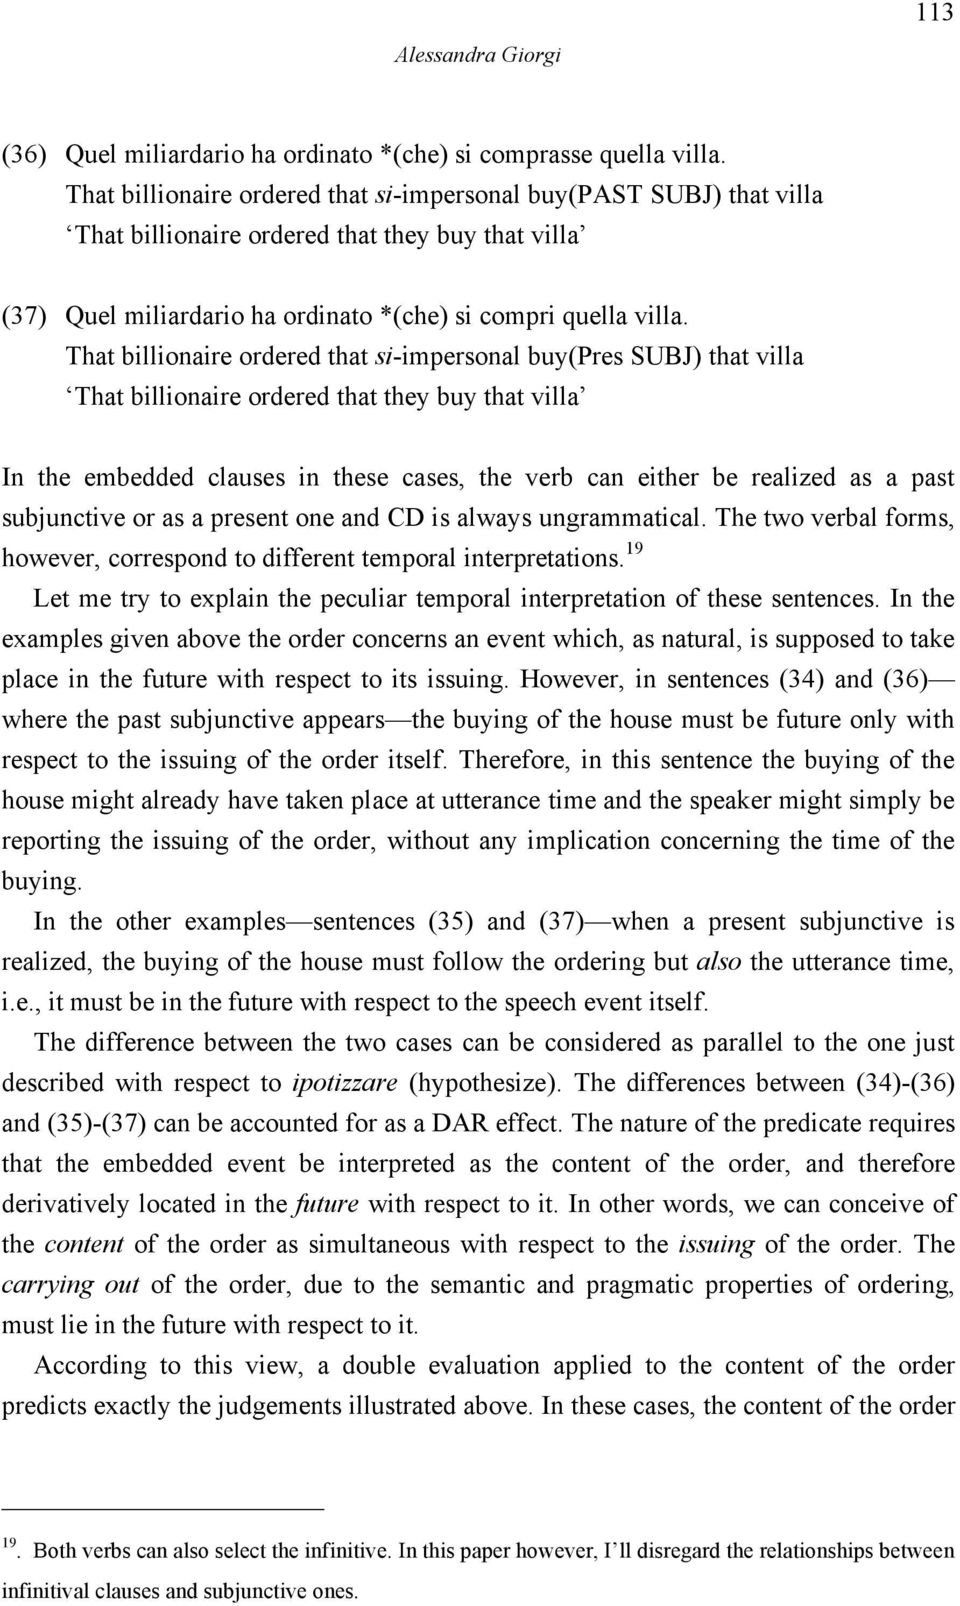 That billionaire ordered that si-impersonal buy(pres SUBJ) that villa That billionaire ordered that they buy that villa In the embedded clauses in these cases, the verb can either be realized as a